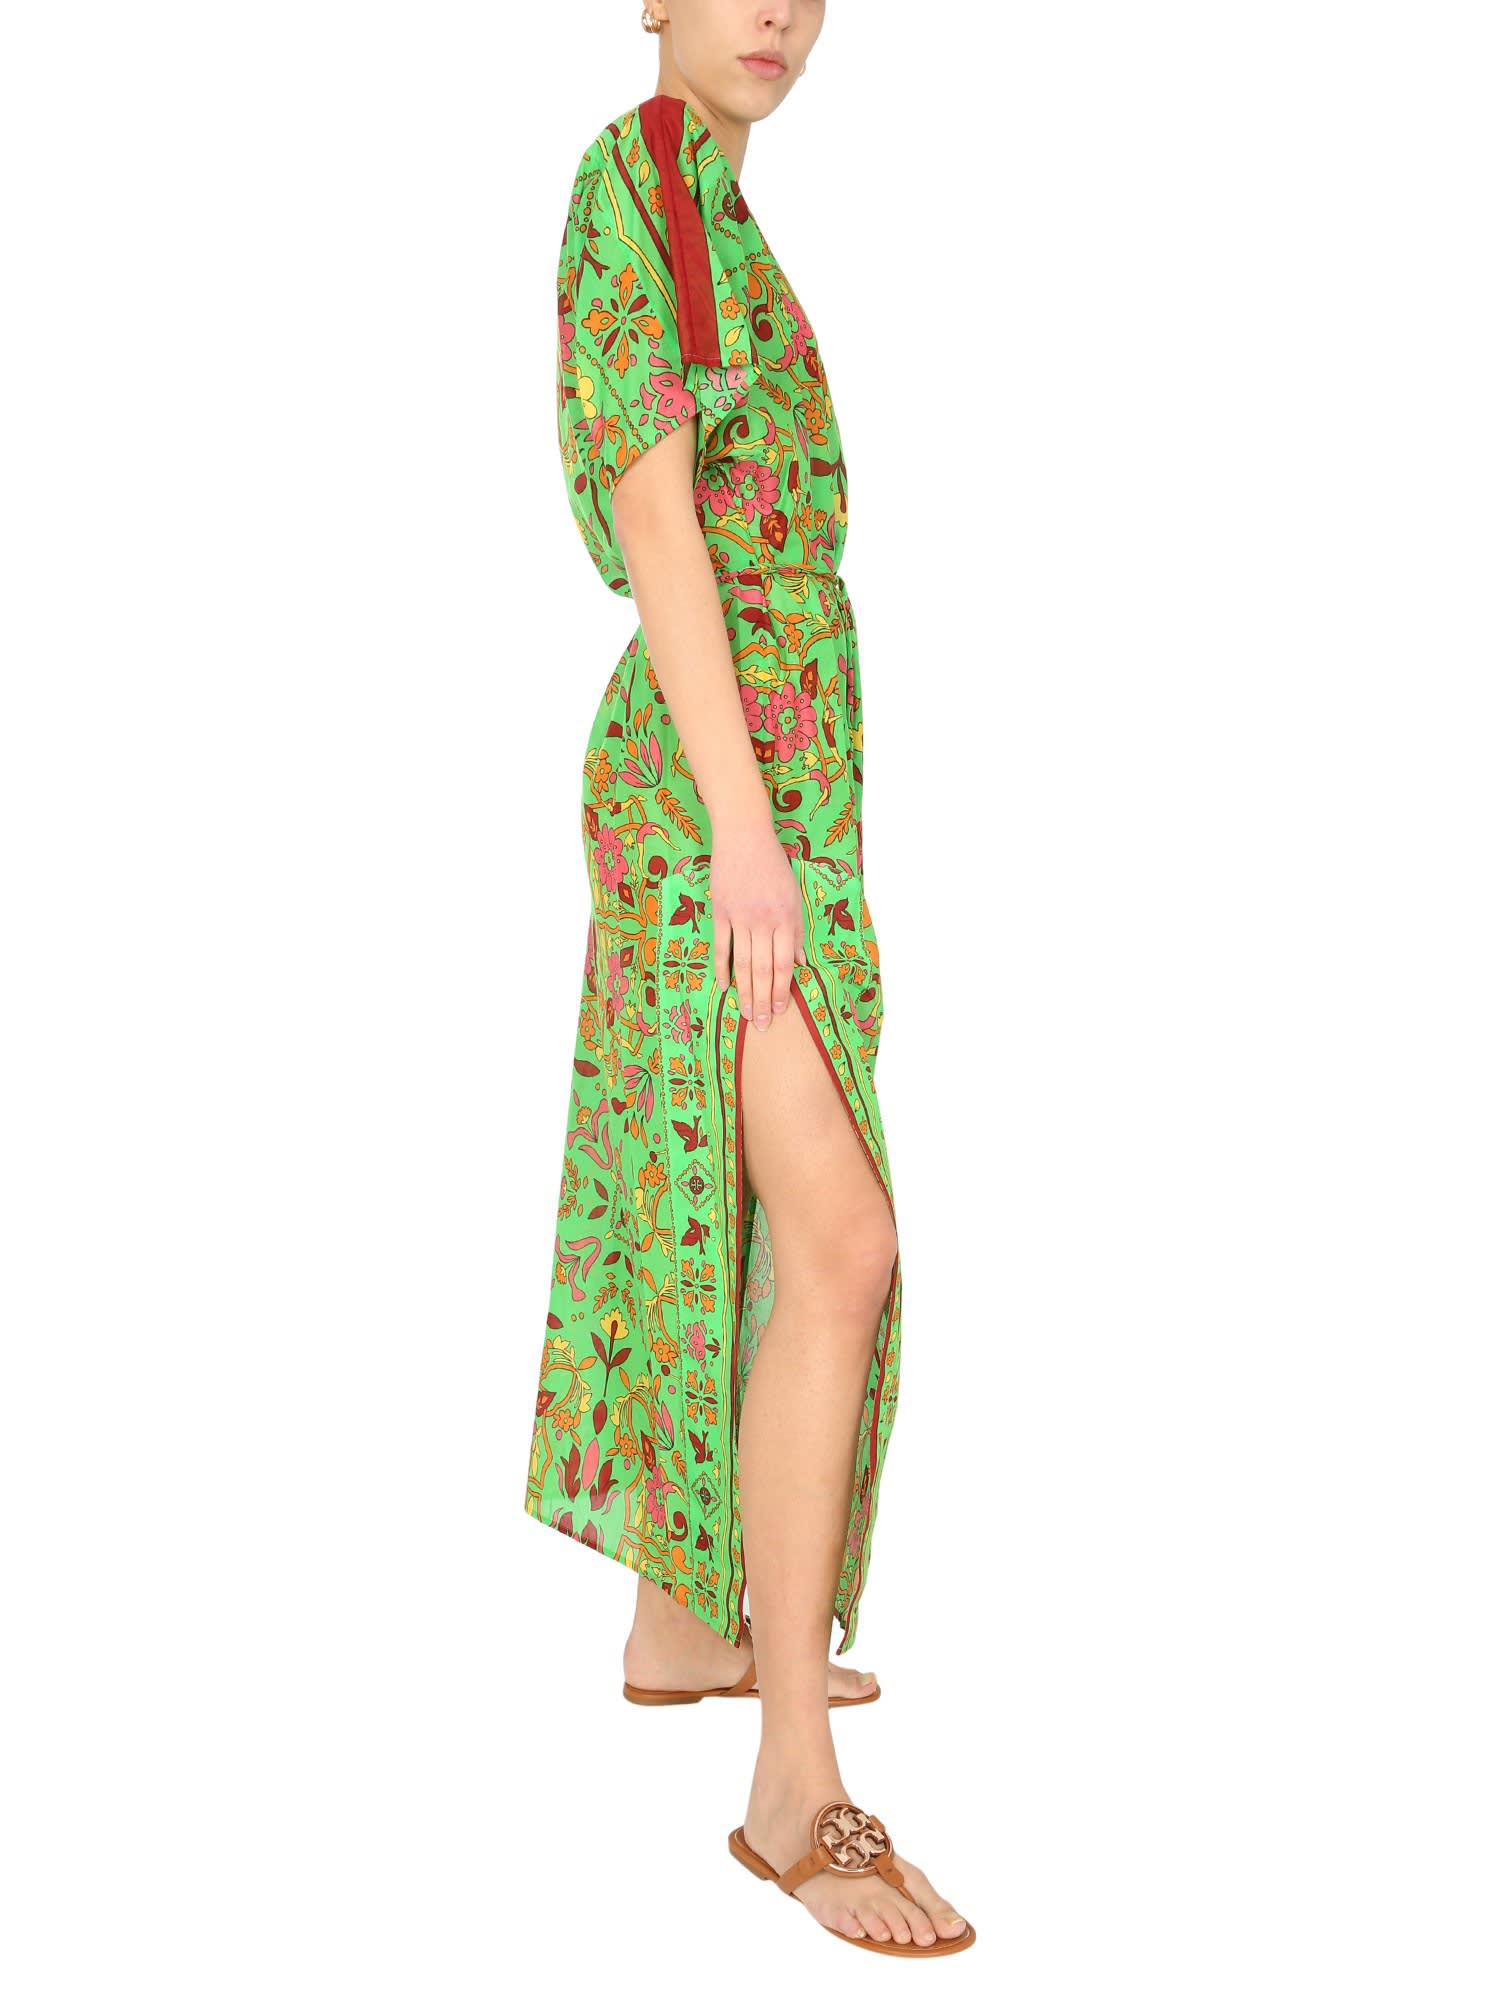 Tory Burch Caftan With Floral Pattern